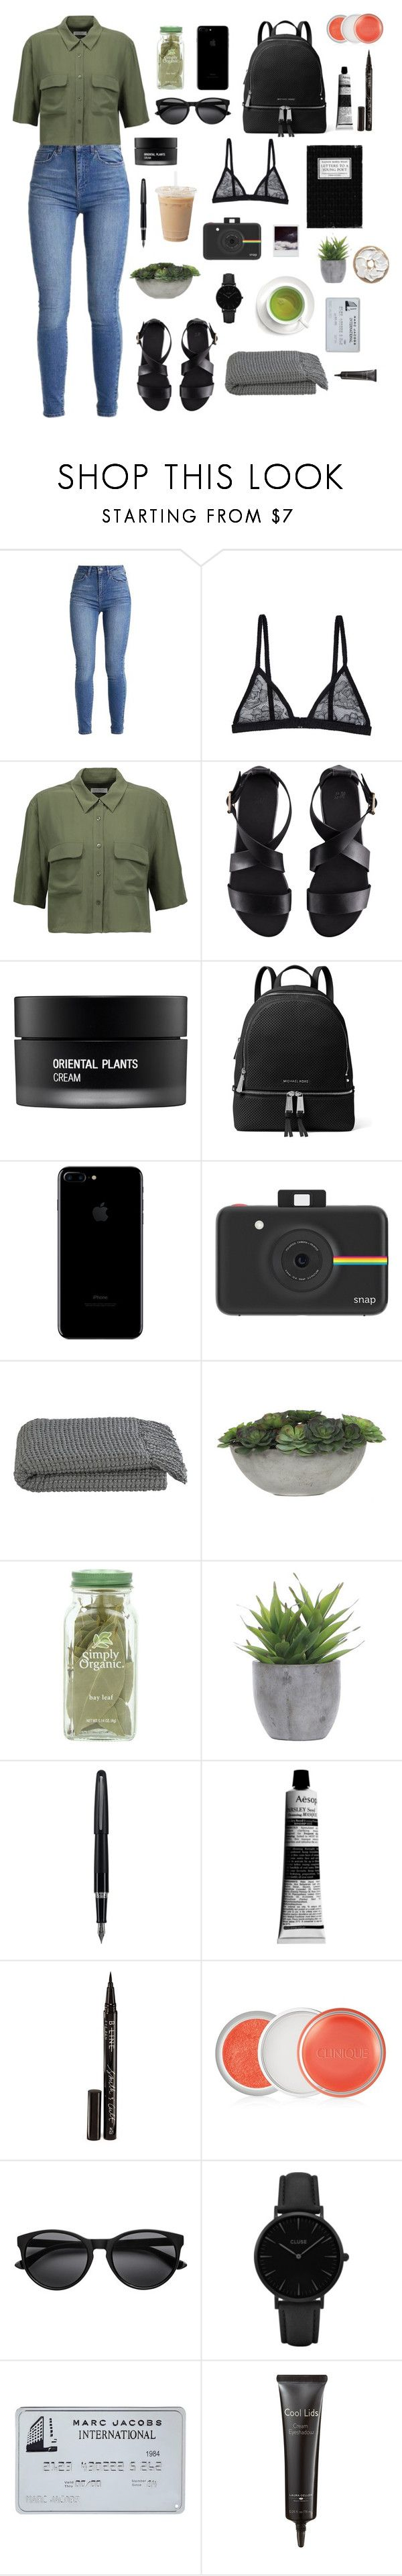 """""""Untitled #50"""" by rubiasol ❤ liked on Polyvore featuring Fleur du Mal, Equipment, H&M, Koh Gen Do, MICHAEL Michael Kors, Polaroid, Crate and Barrel, Lux-Art Silks, Fountain and Aesop"""